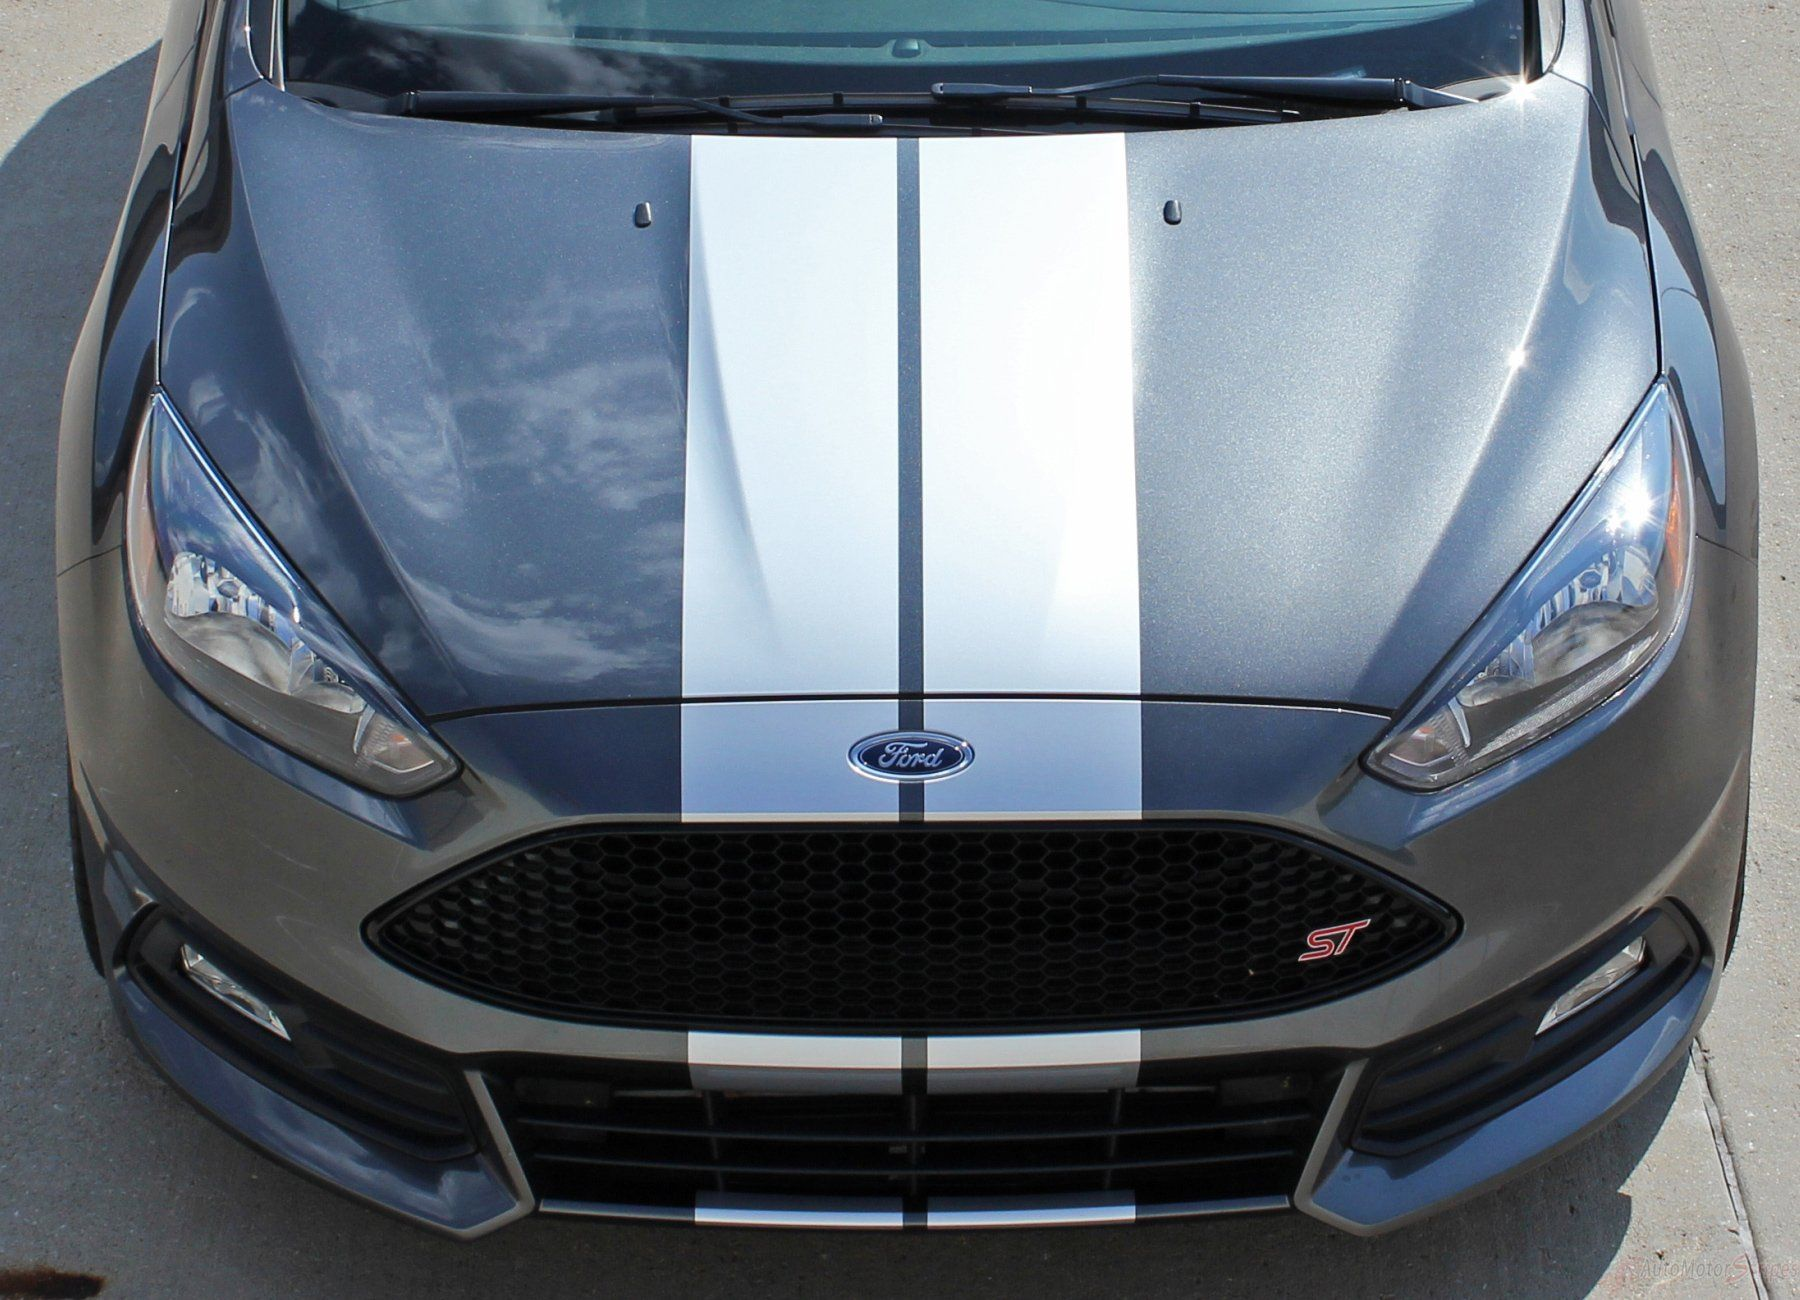 2016 2018 Ford Focus Target Rally Racing Stripes Vinyl Graphic Hood 3m Decals Kit Racing Stripes Ford Focus Mustang Stripes